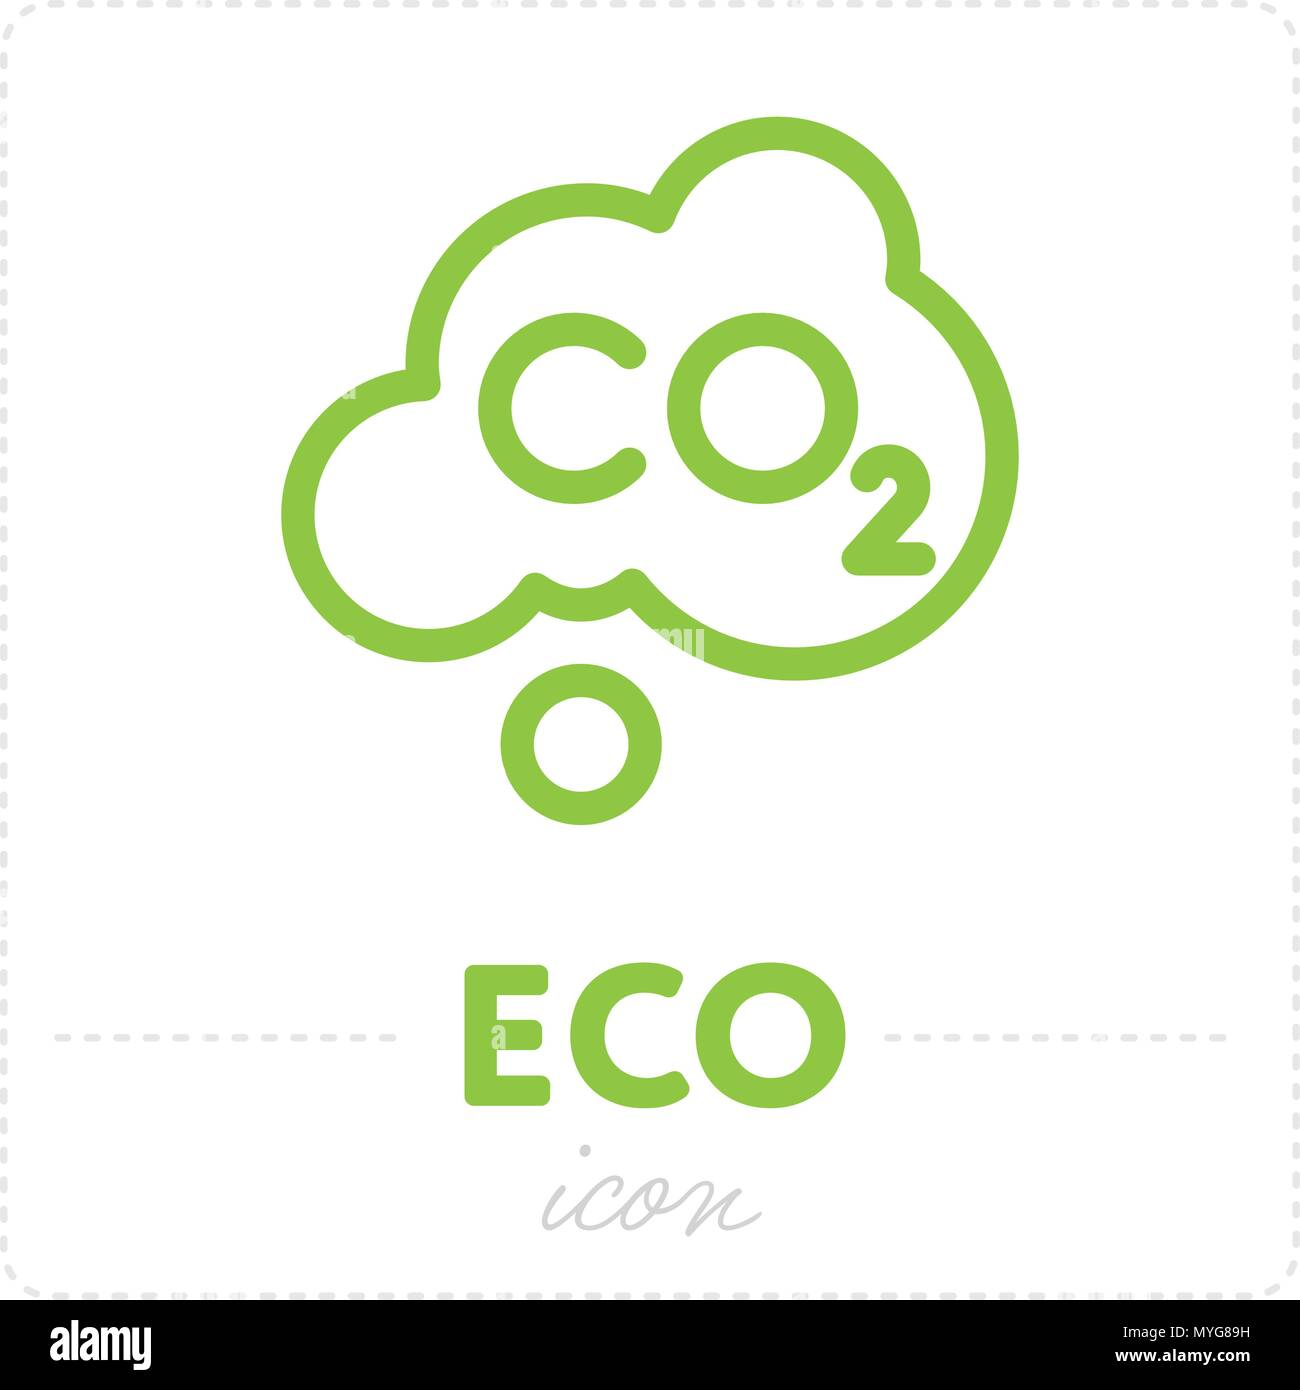 Green icon with carbon dioxide element - Stock Image